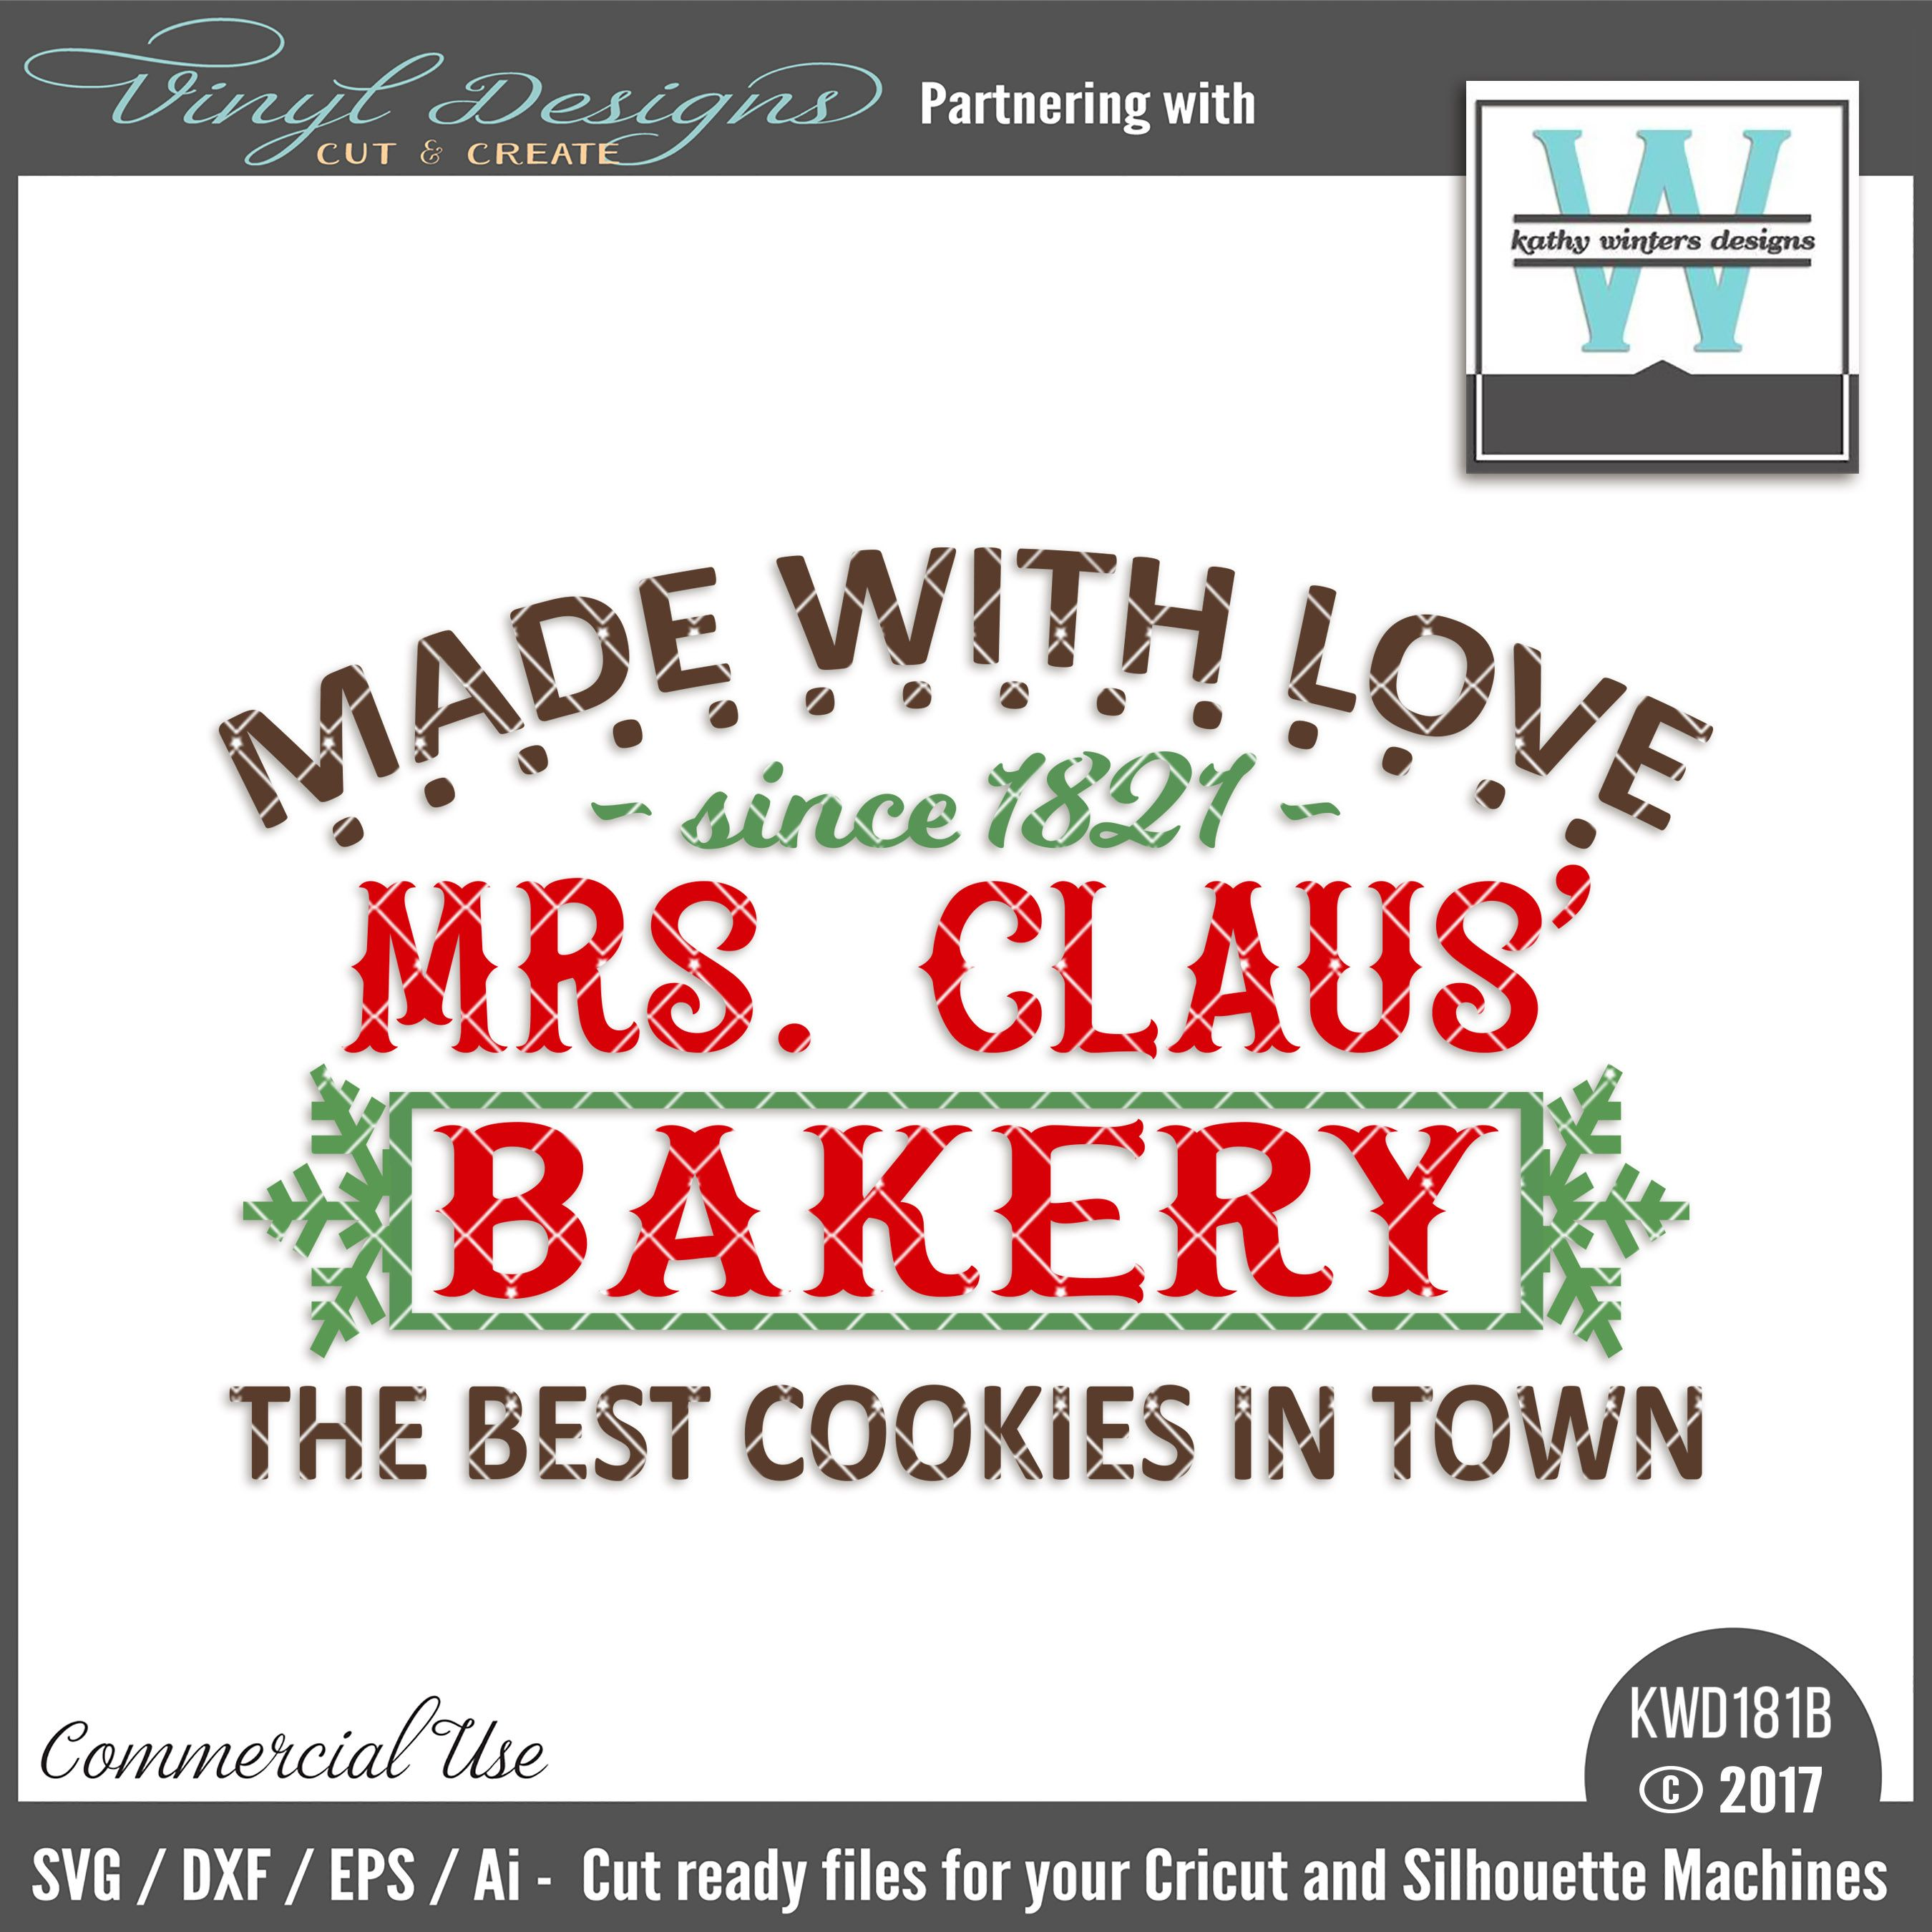 Kwd181b Mrs Claus Bakery Sold By Kathy Winters Designssmall Business Commercial Useavailable In S Christmas Phrases Christmas T Shirt Design Diy Xmas Gifts